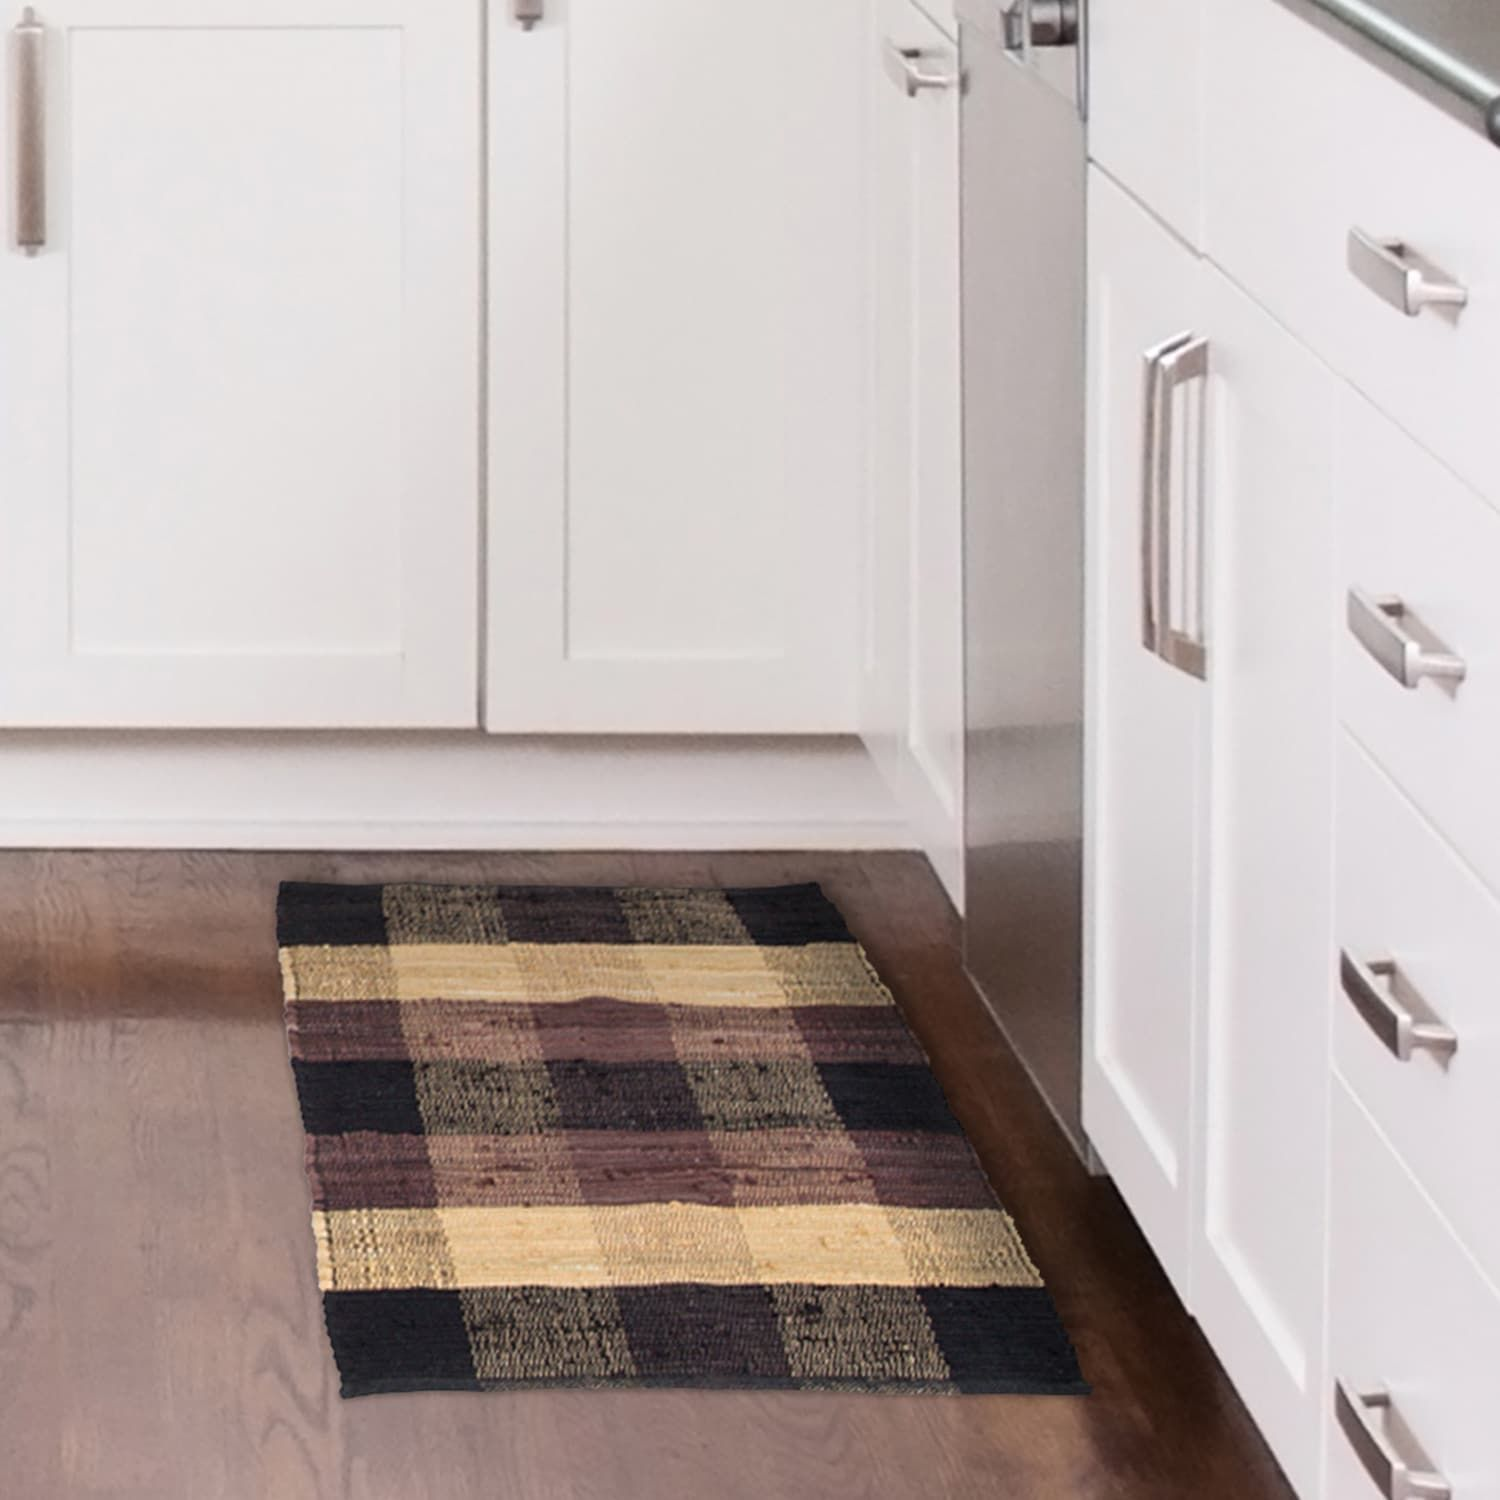 Chindi Plaid Black Tan Chocolate 21x34 Rug Accent Rugs Rugs